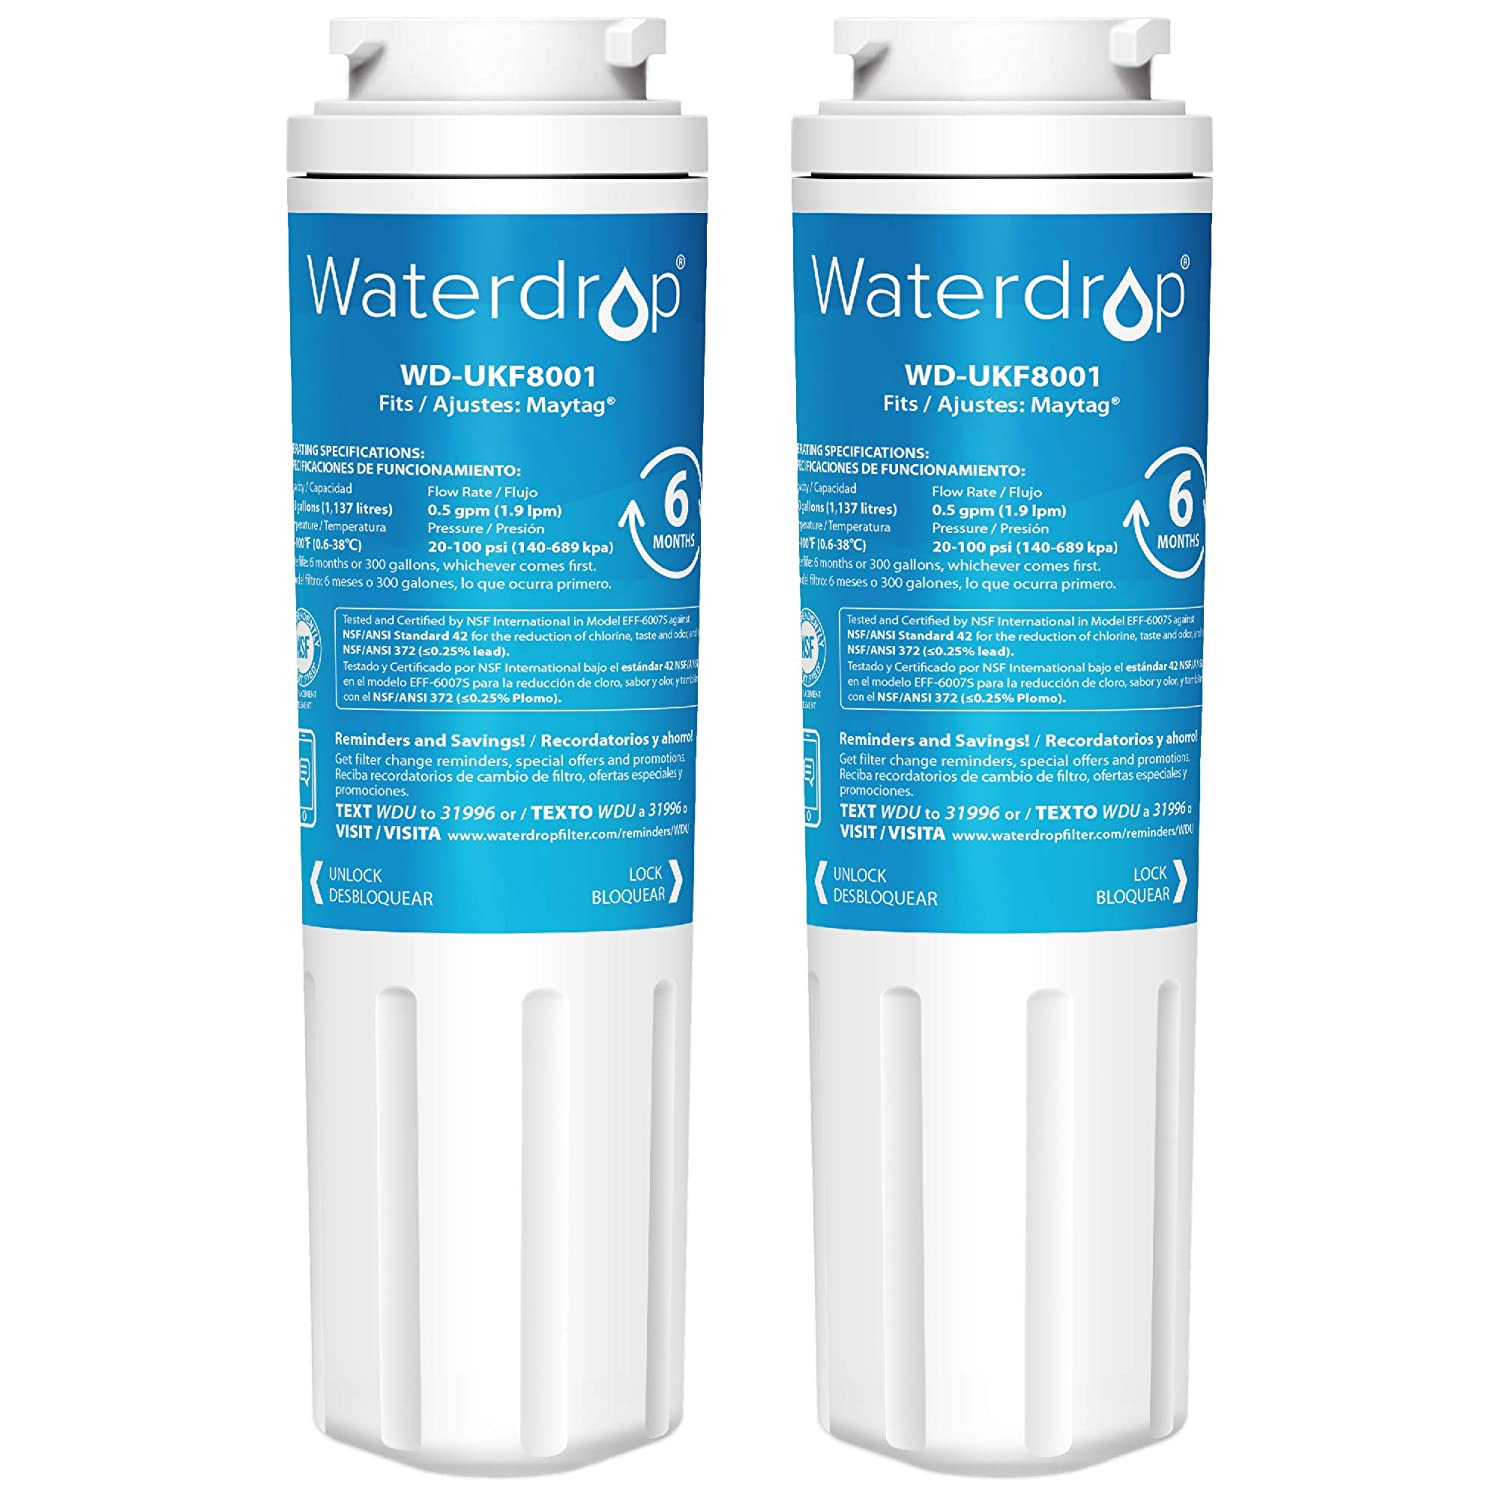 Waterdrop UKF8001 Replacement Refrigerator Water Filter